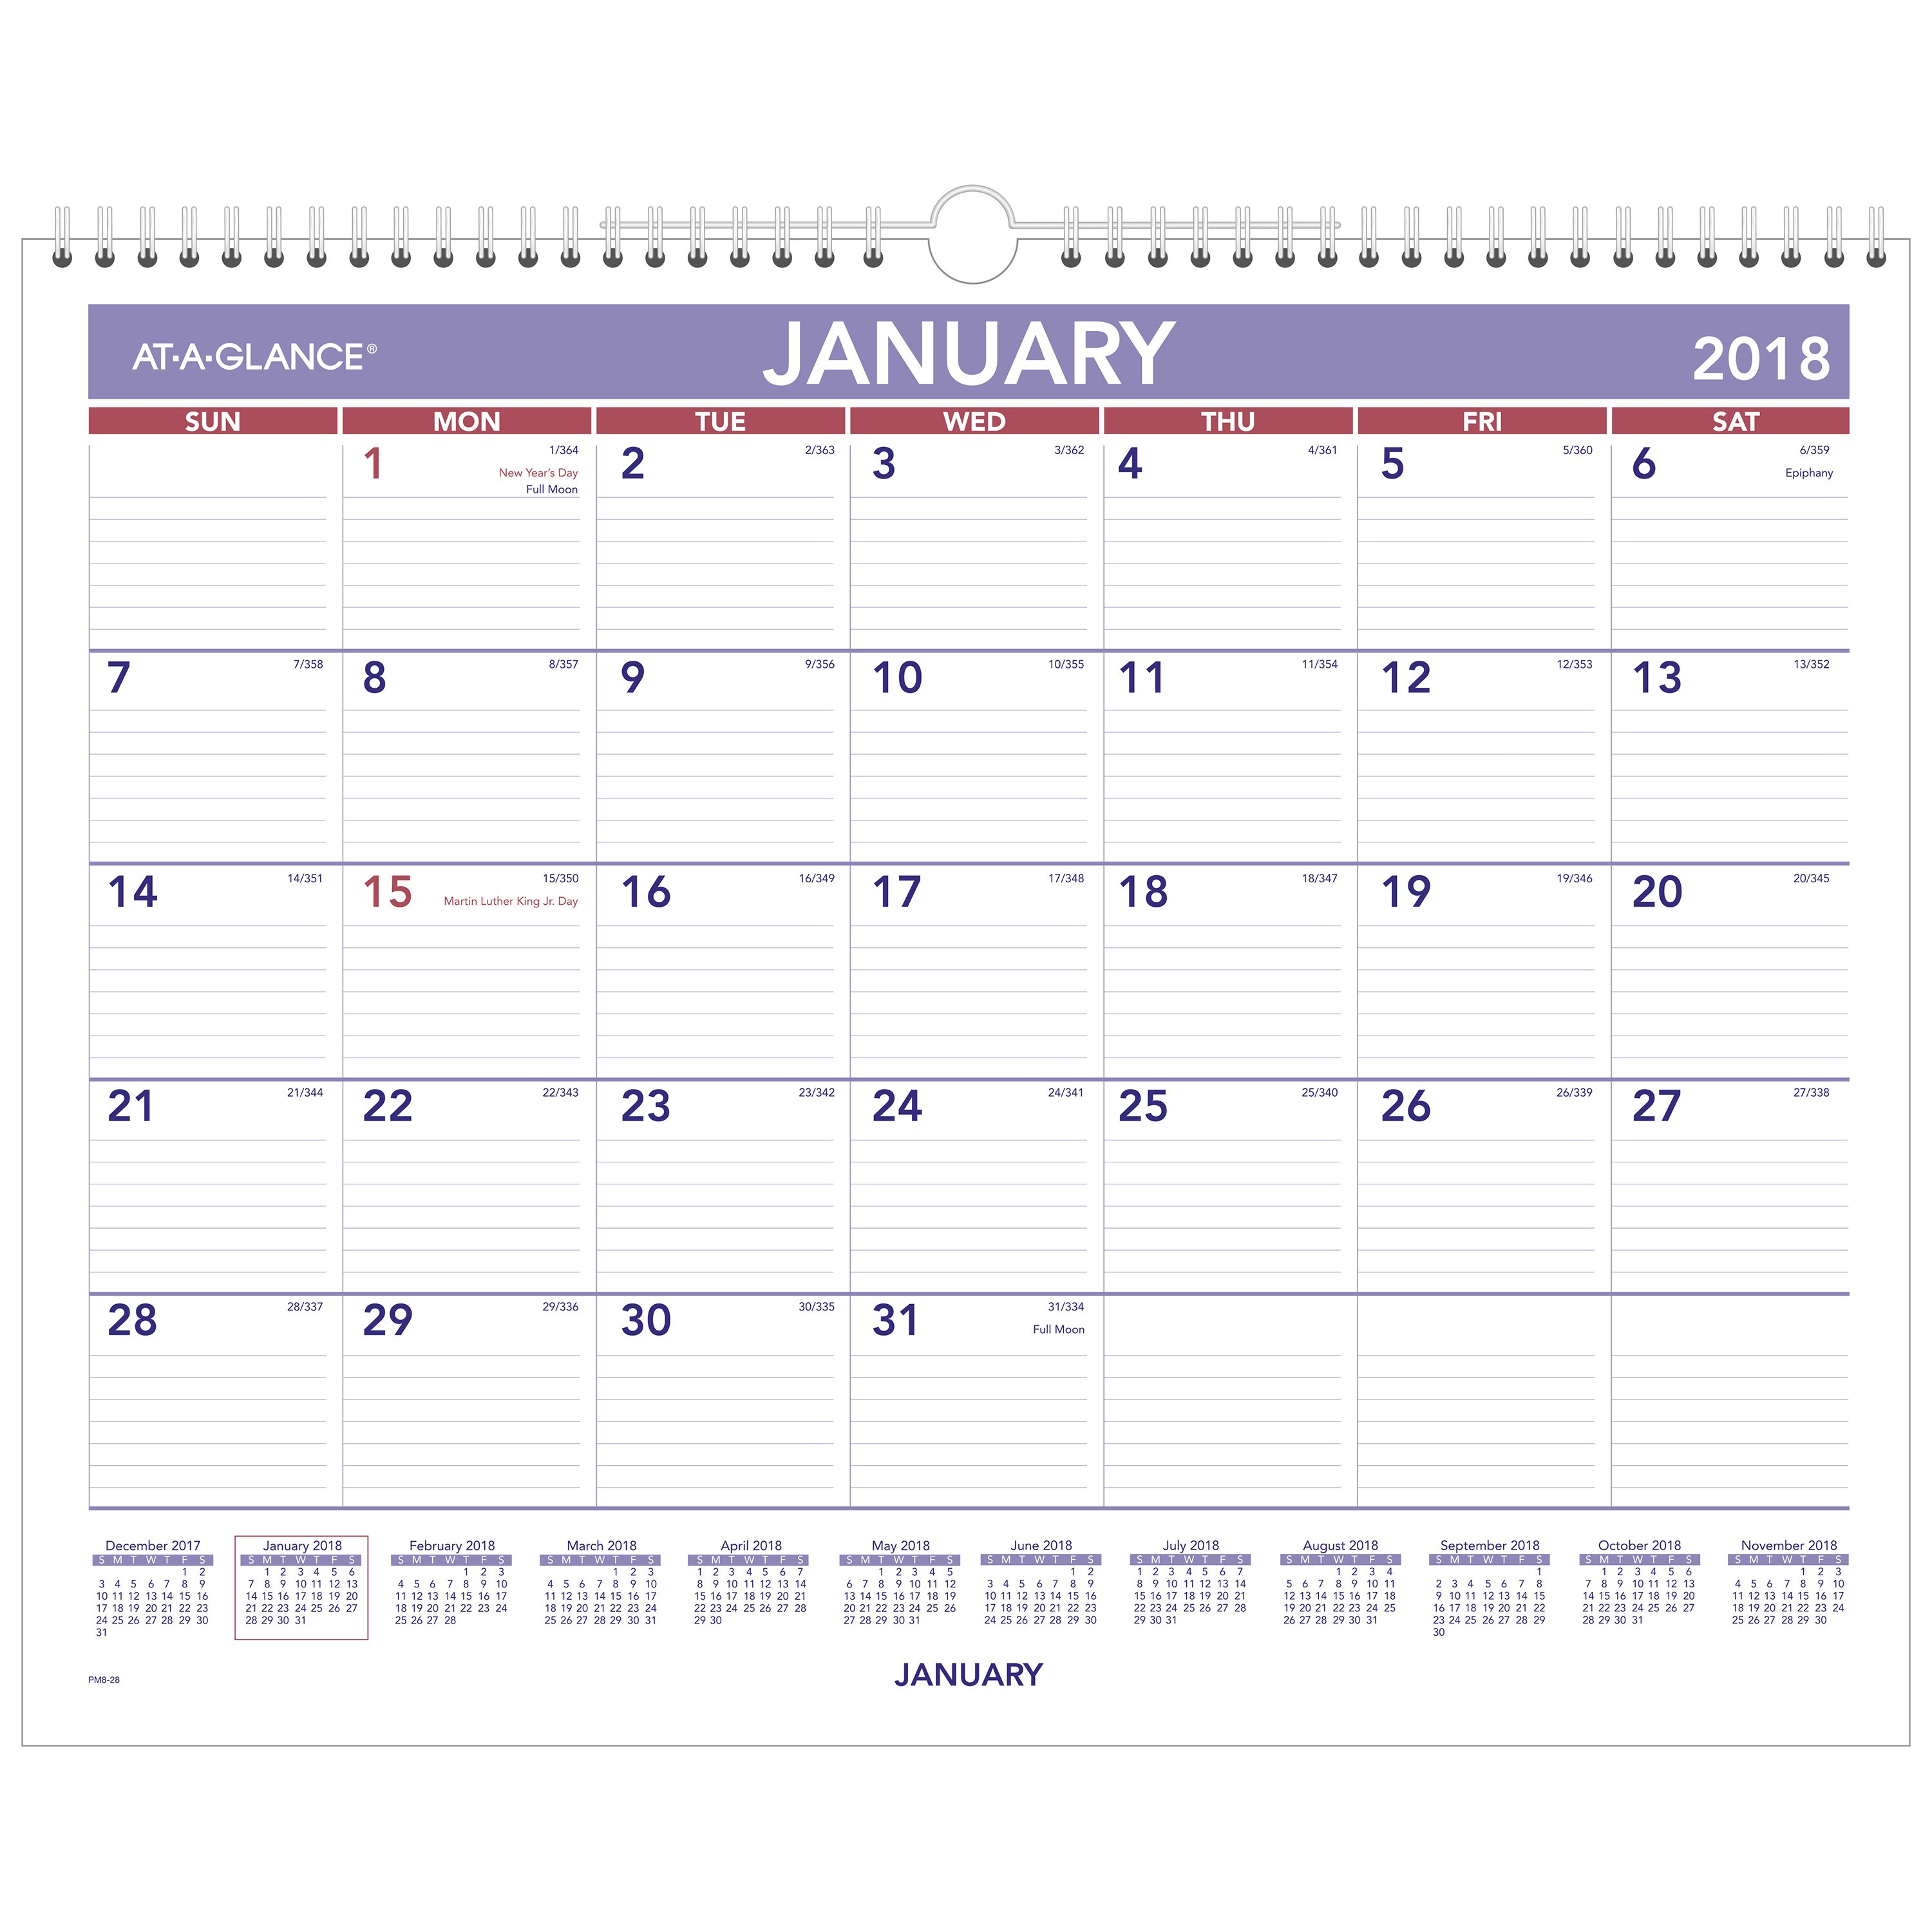 "2018 AT-A-GLANCE Monthly Wall Calendar, 12 Months, January Start, 15"" x 12"", Wirebound (PM8W28)"